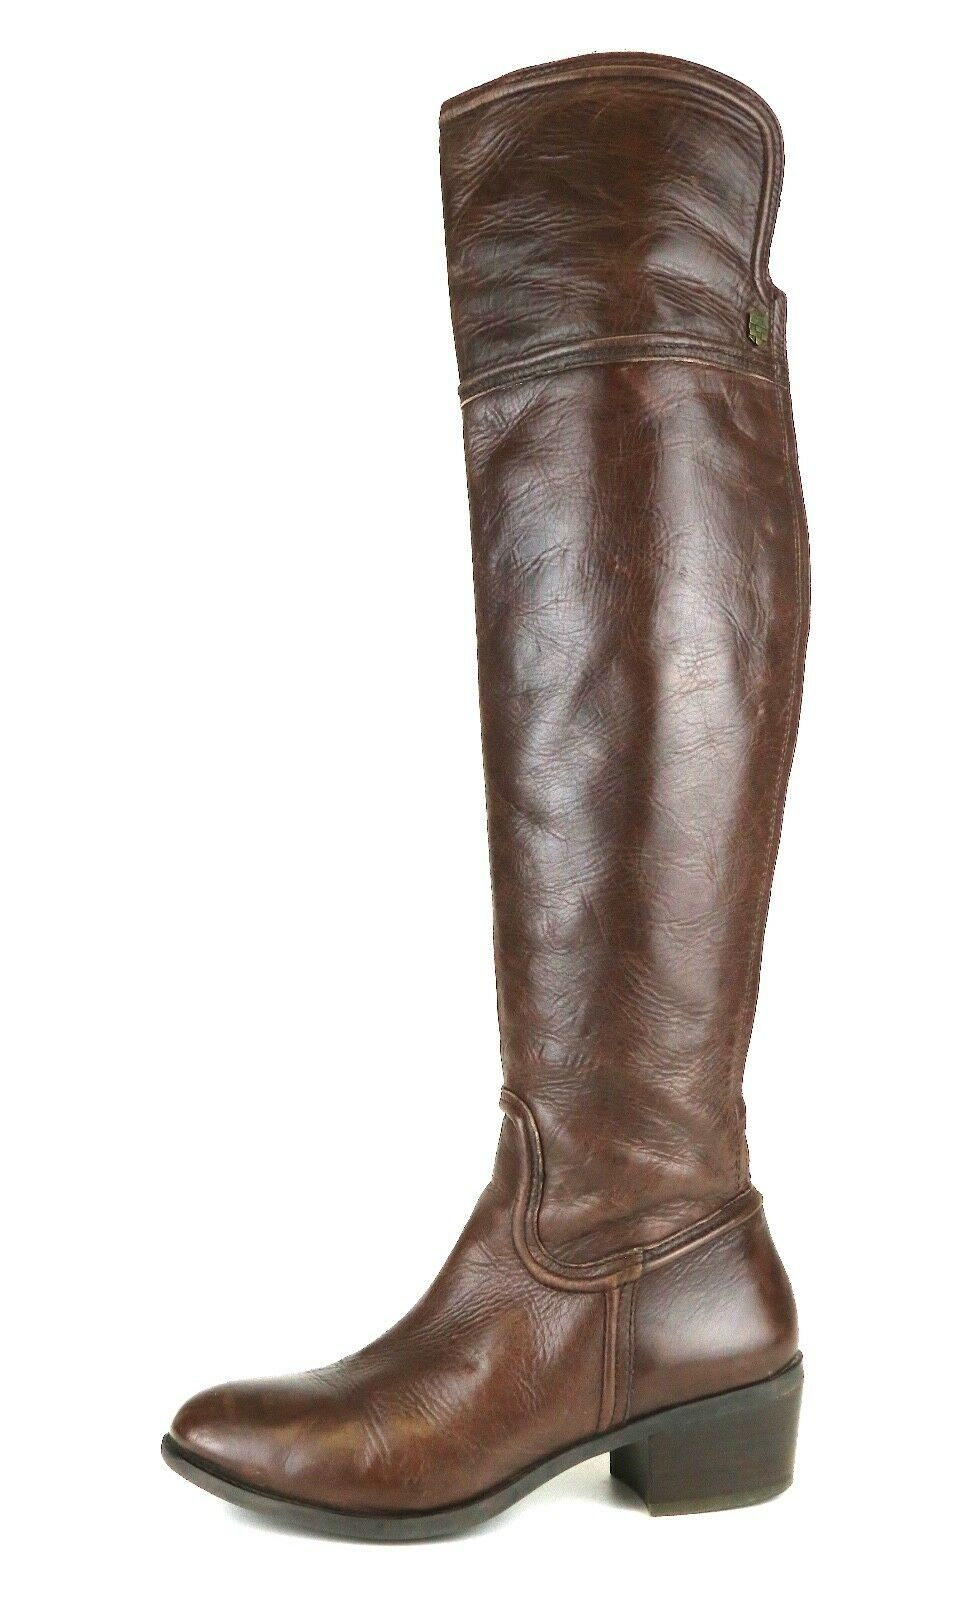 Vince Camuto Baldwin Over Knee Leather Boot Brown Brown Brown Women Sz 8 M 5419  e7747e